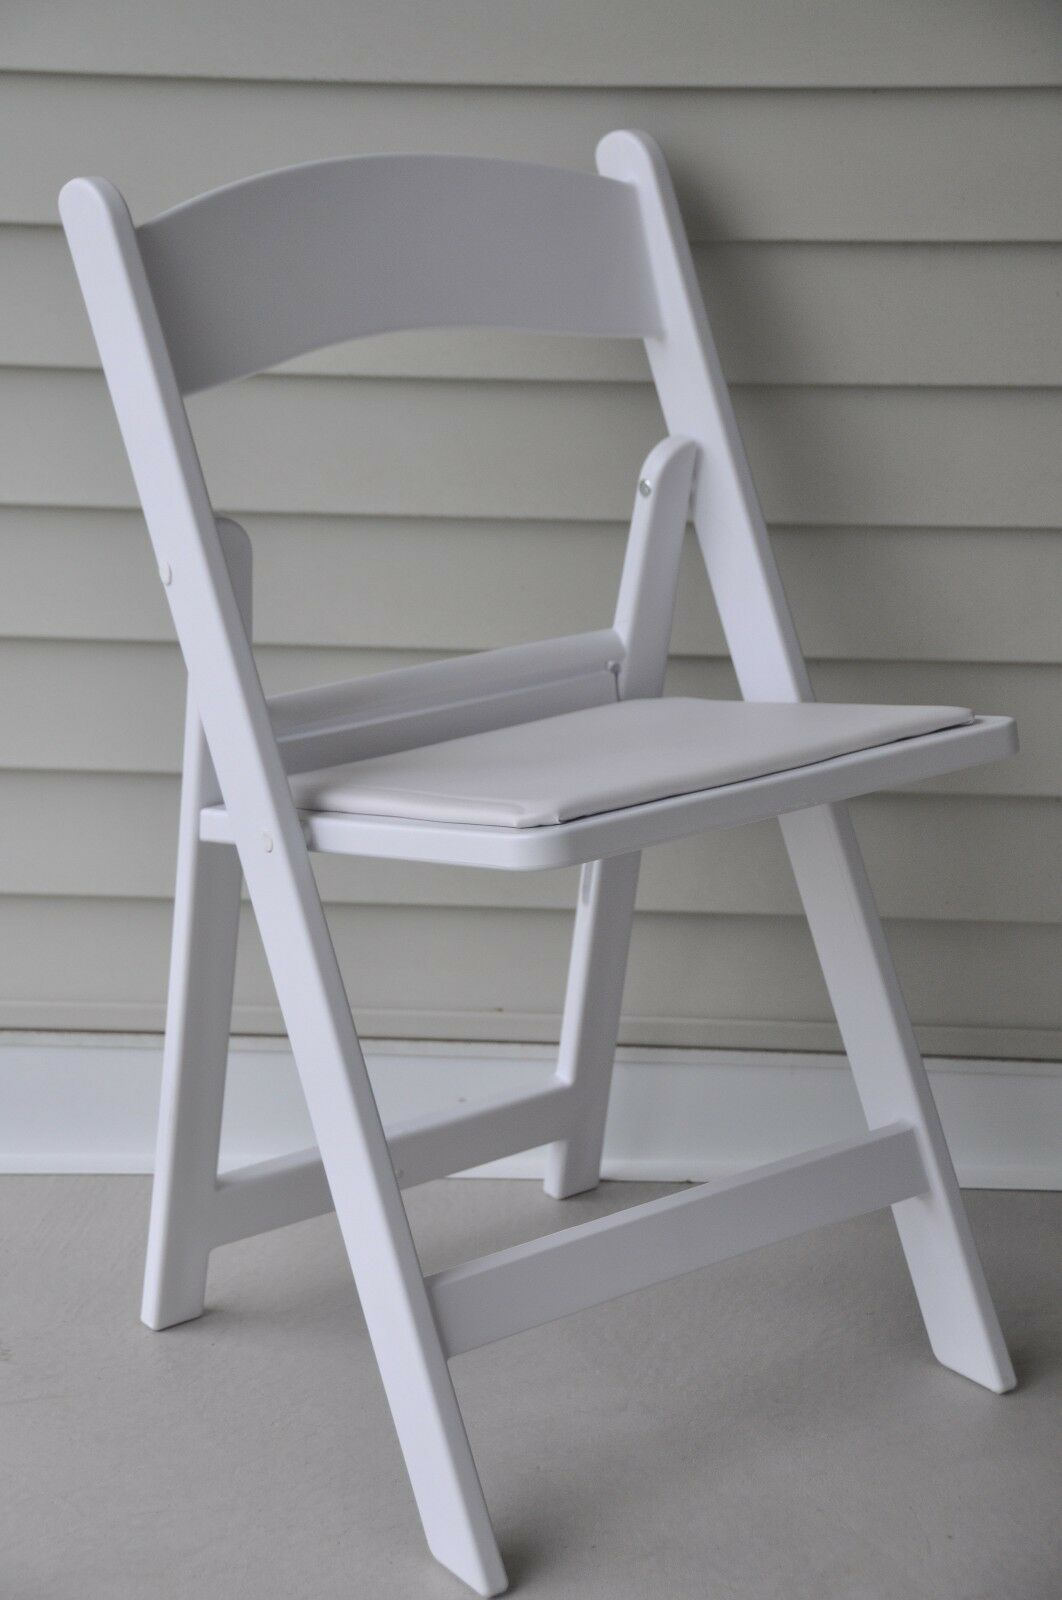 commercial folding chairs classic ikea chair 48 white resin office meeting